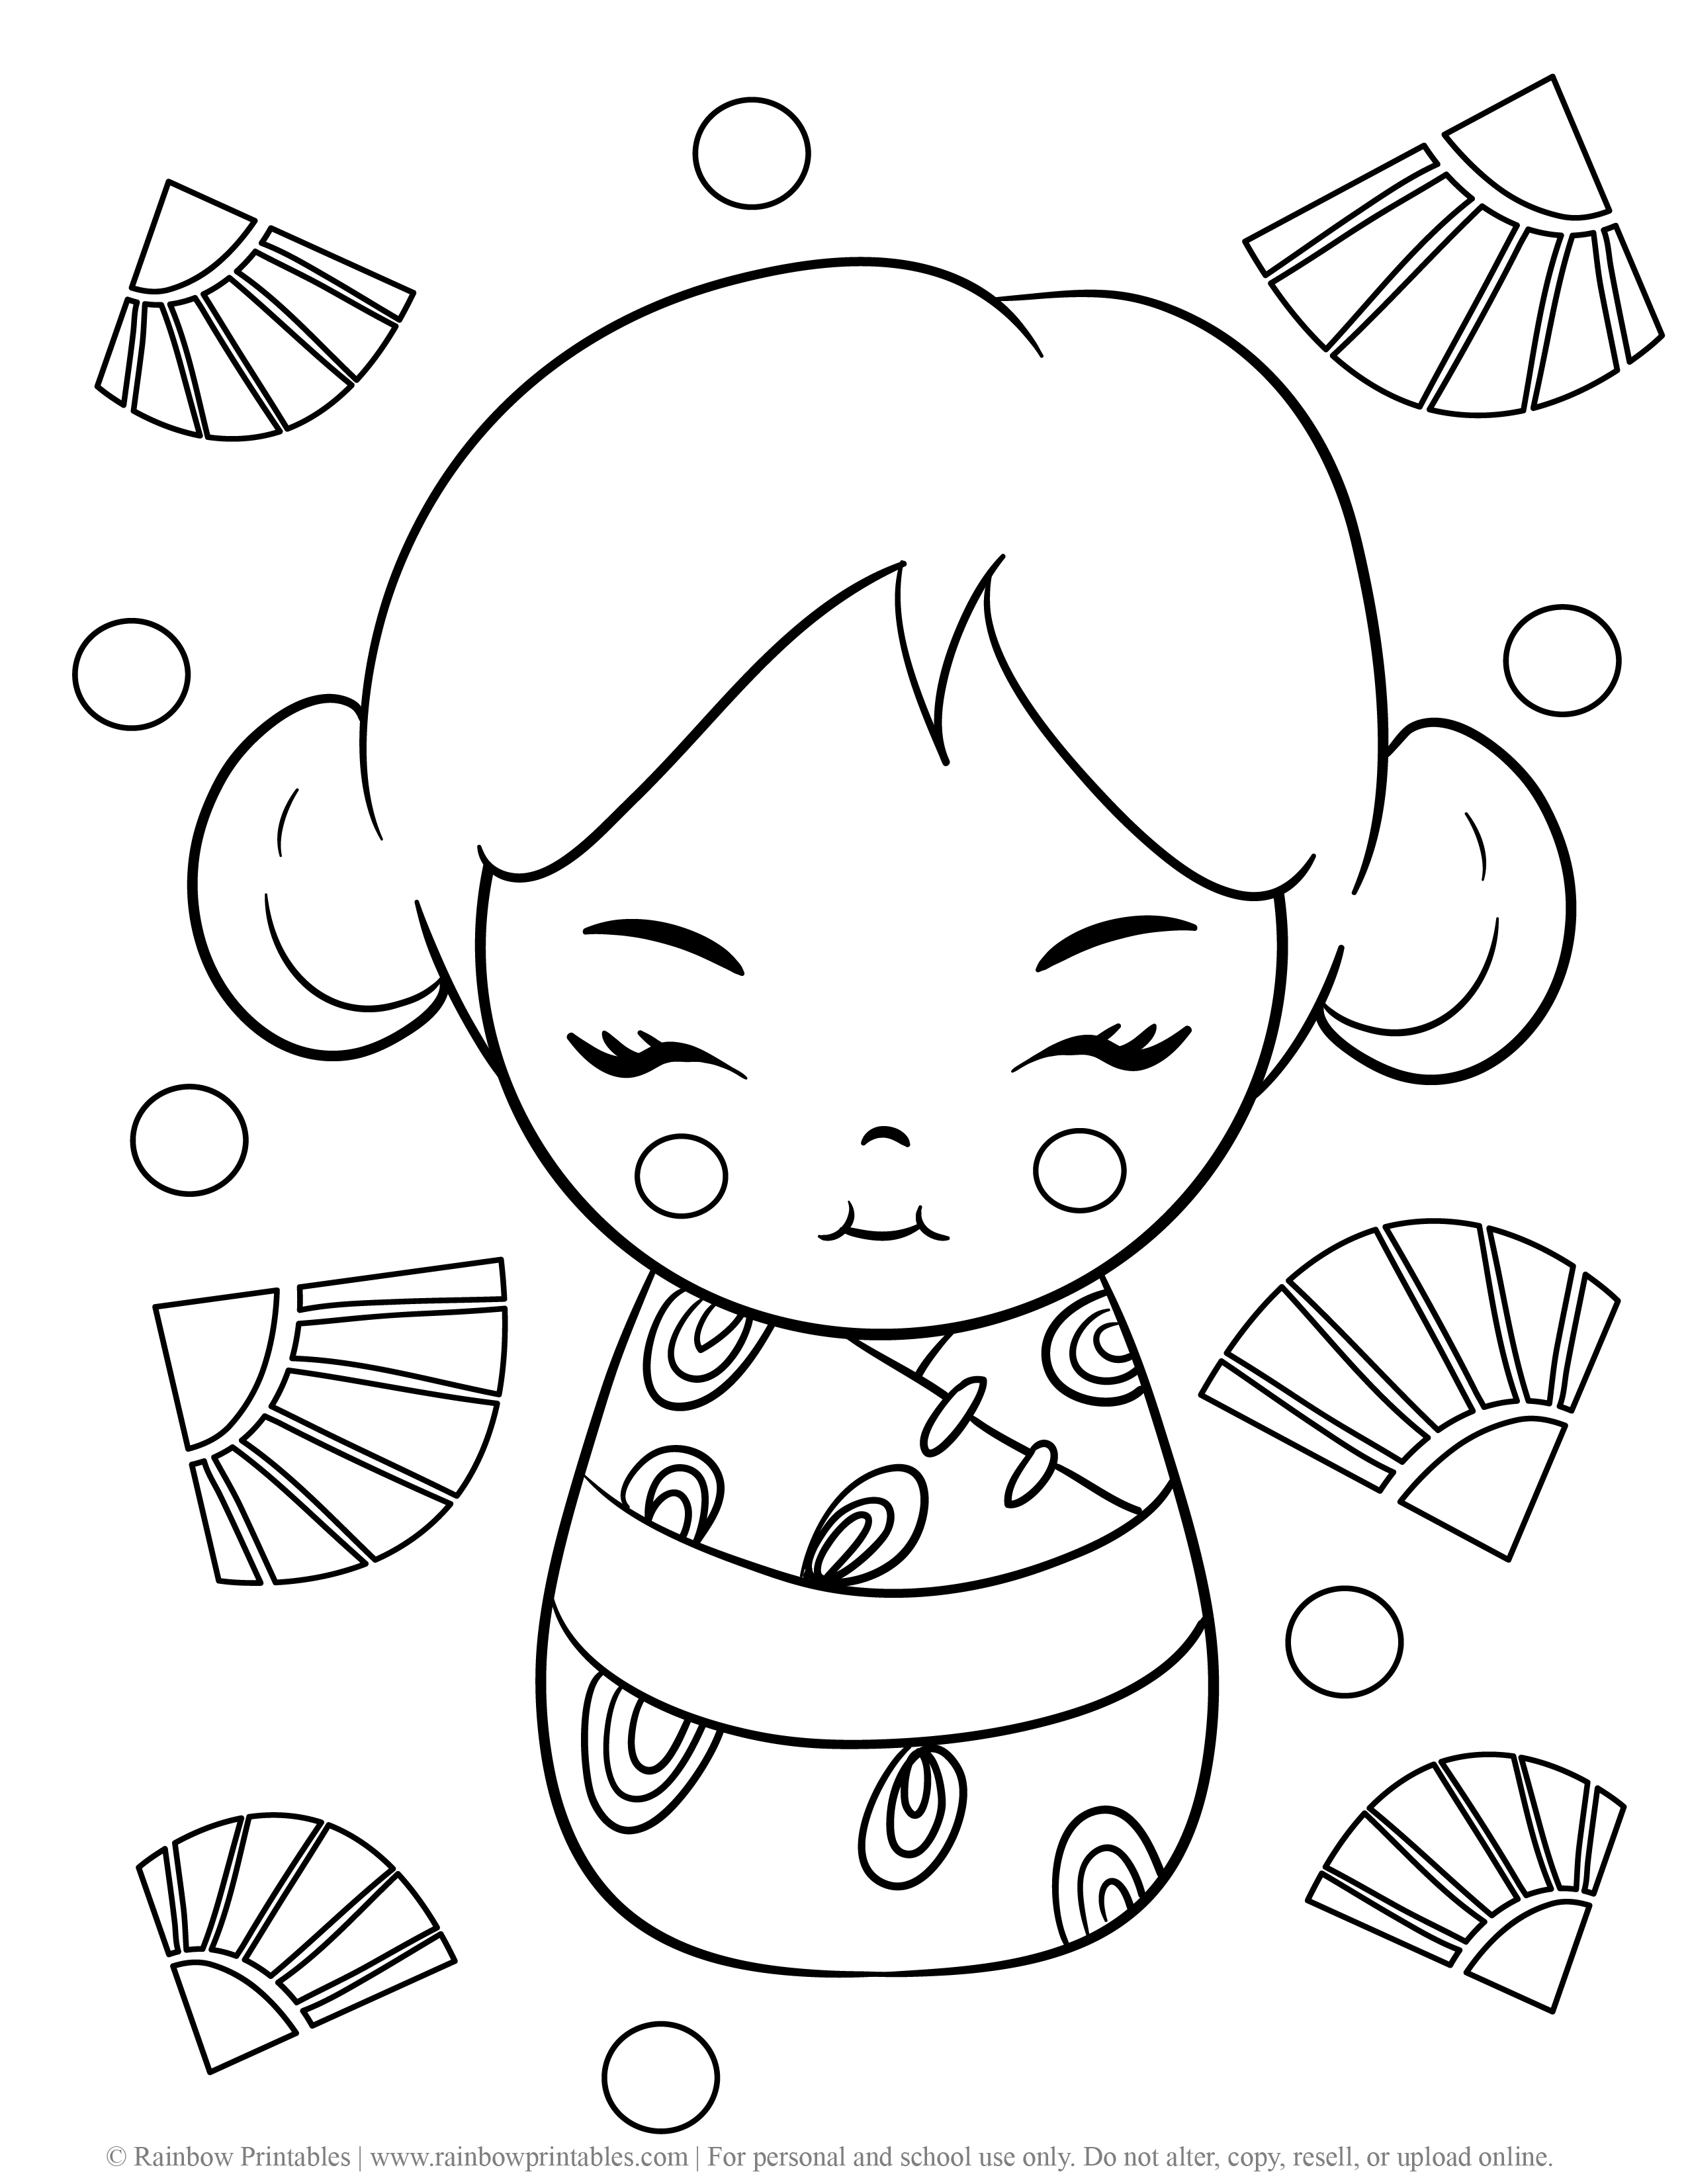 KIMMIDOLL JApanese Wooden Doll CUte Asian Toy Coloring Pages for Kids